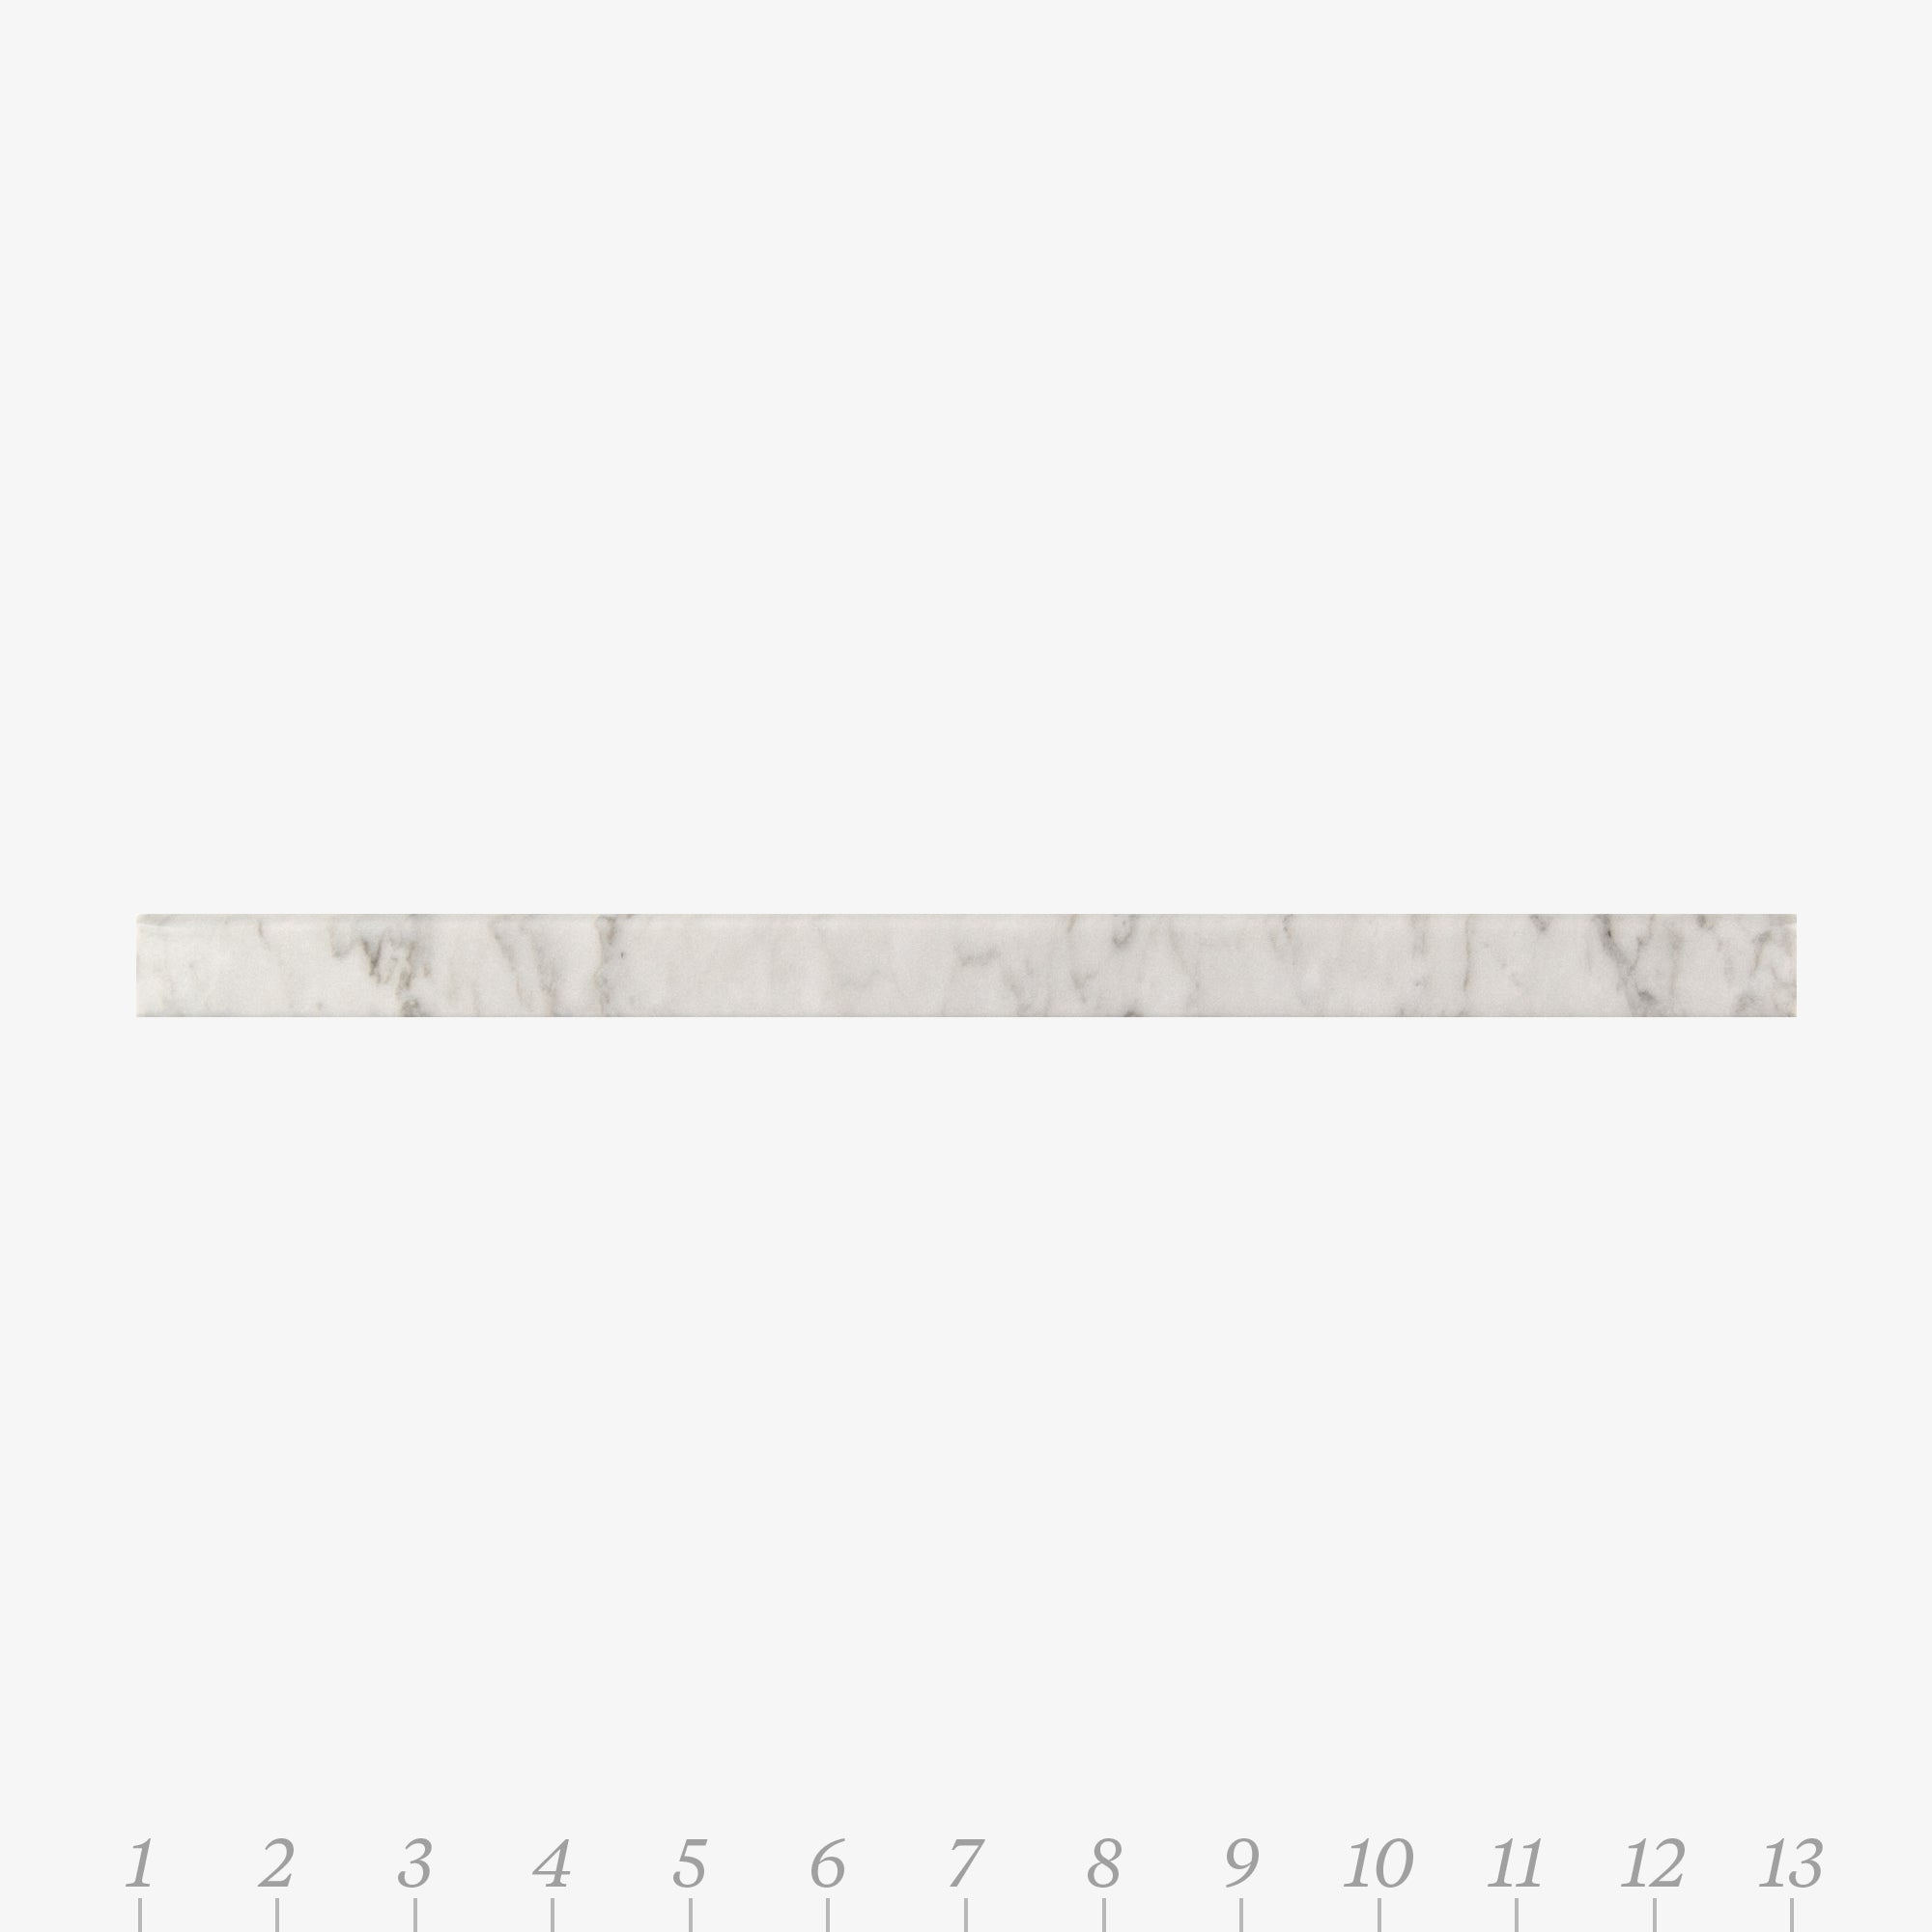 Chelsea 1 Bianco Carrara Marble Swatch Card  Polished Samples Liner product photo